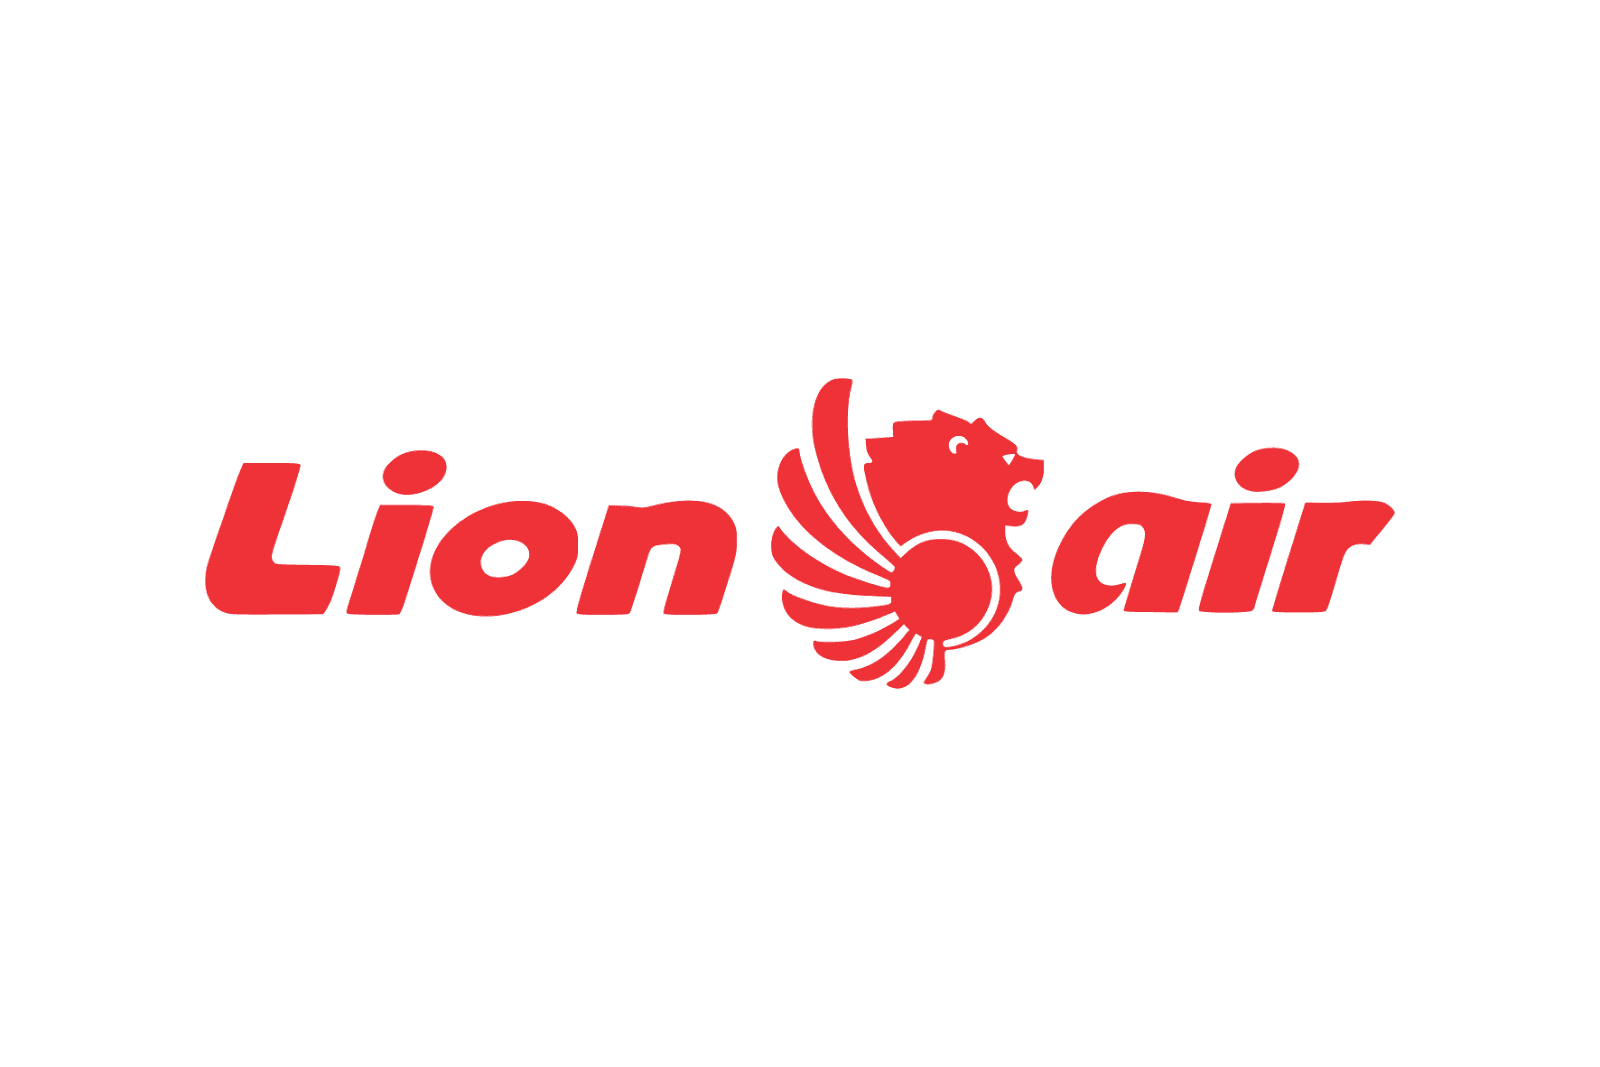 Lion Air Indonesia Kupon & Diskon 2021